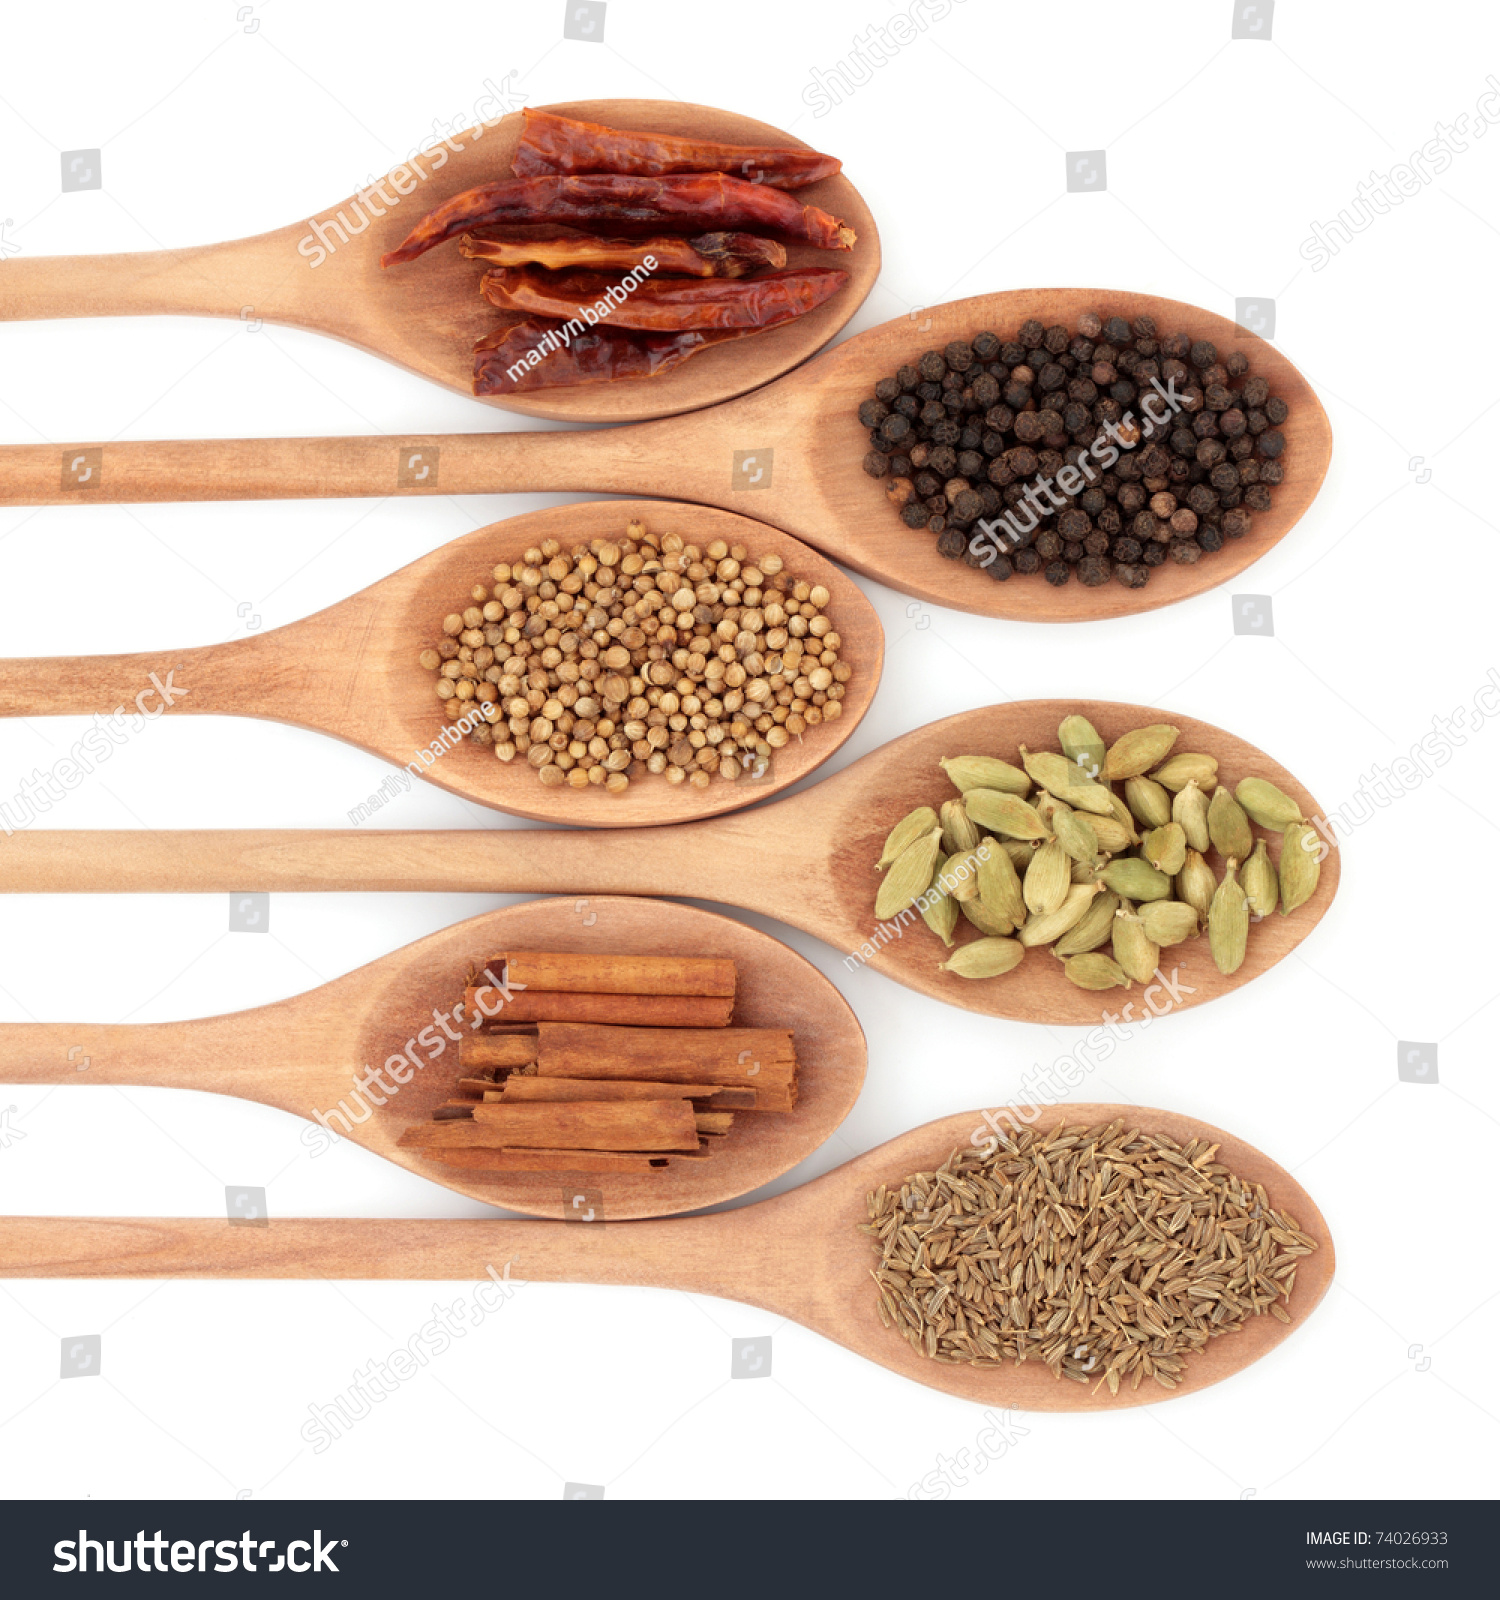 how to use cumin seeds in cooking